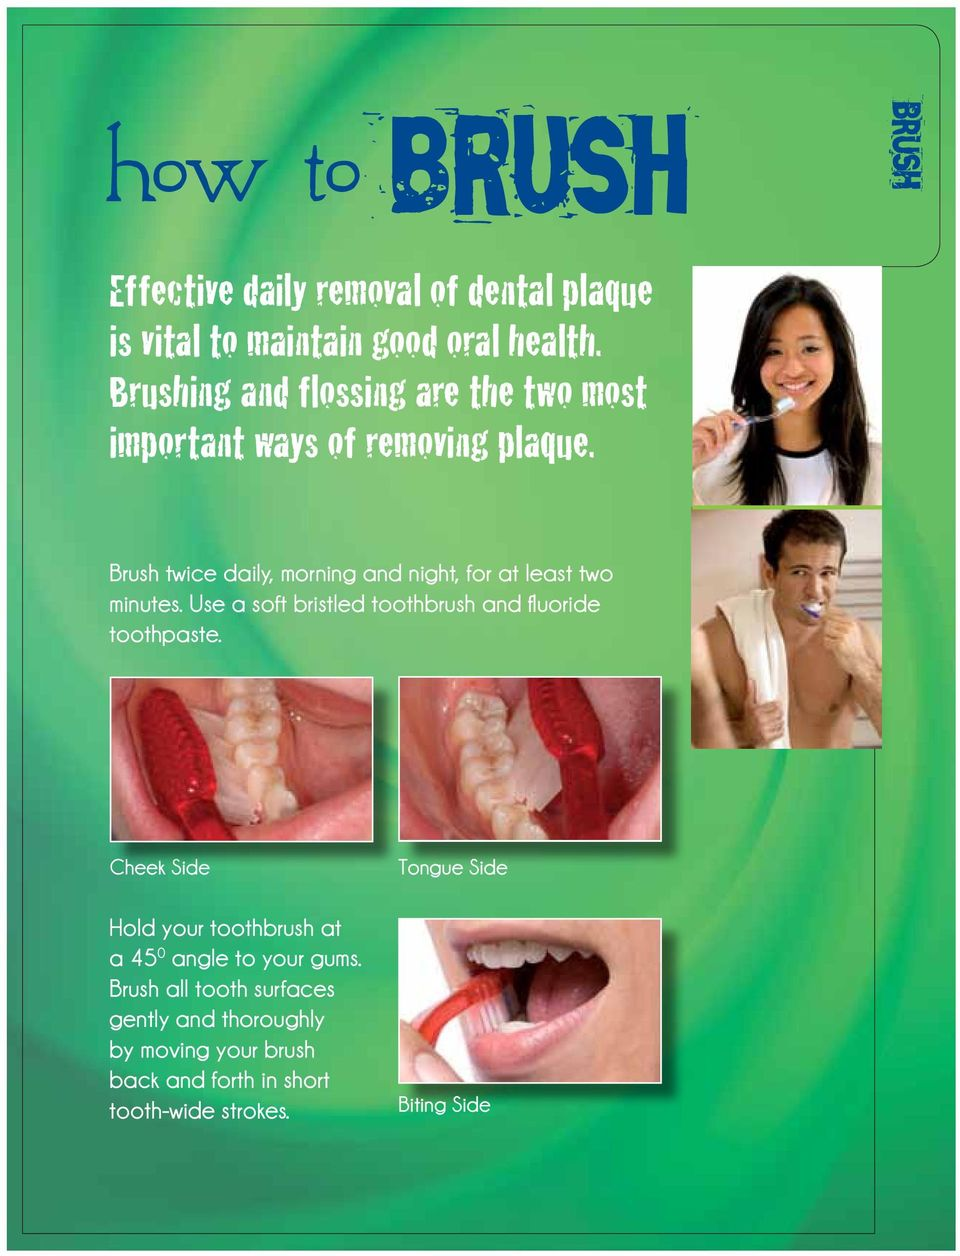 Brush twice daily, morning and night, for at least two minutes. Use a soft bristled toothbrush and fluoride toothpaste.